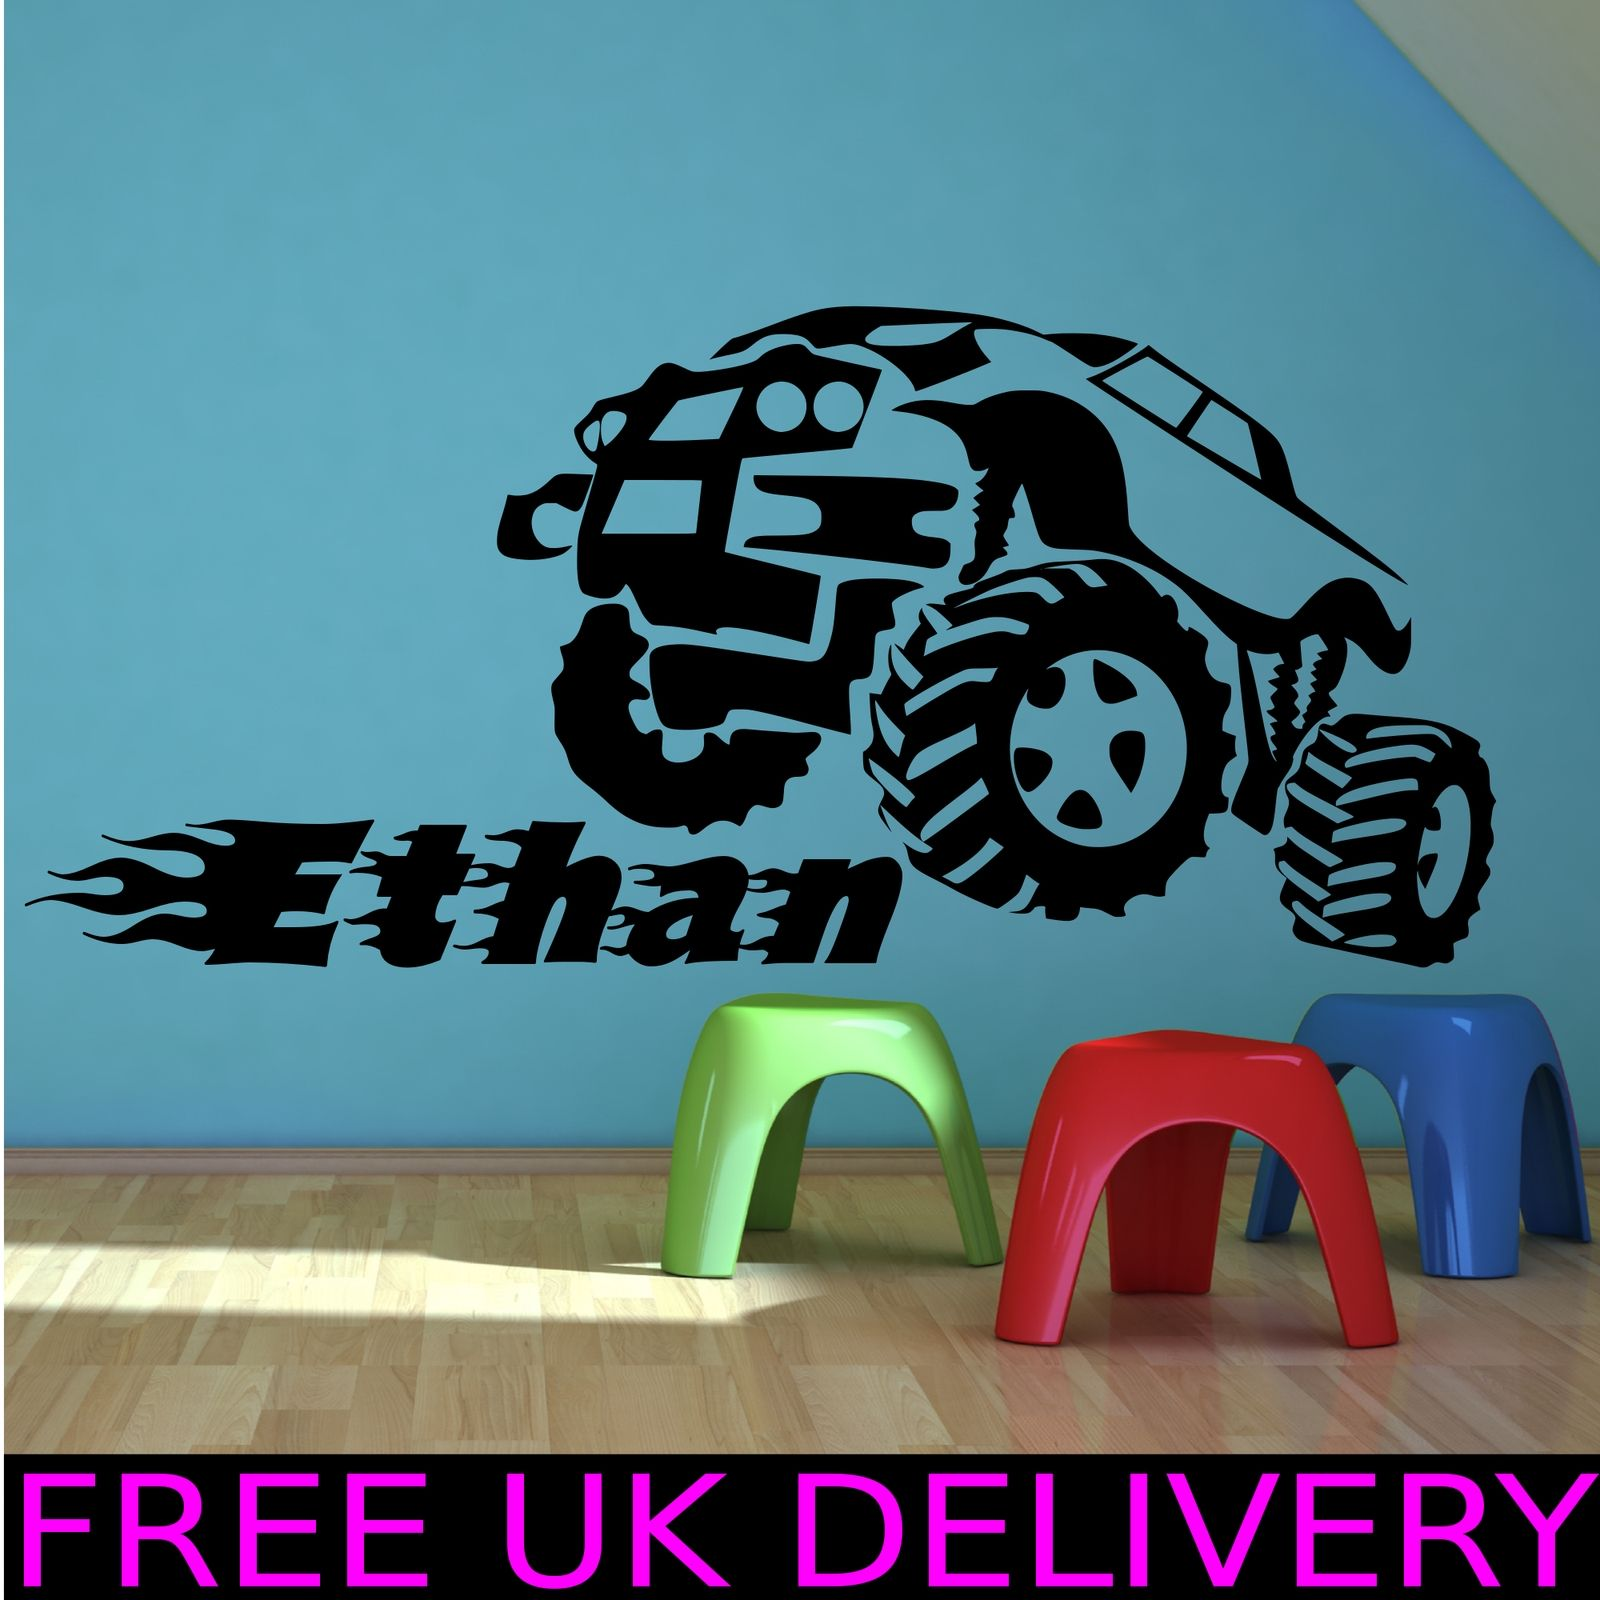 personalised monster truck name bedroom wall sticker decal transfer mural wsd722 ebay. Black Bedroom Furniture Sets. Home Design Ideas